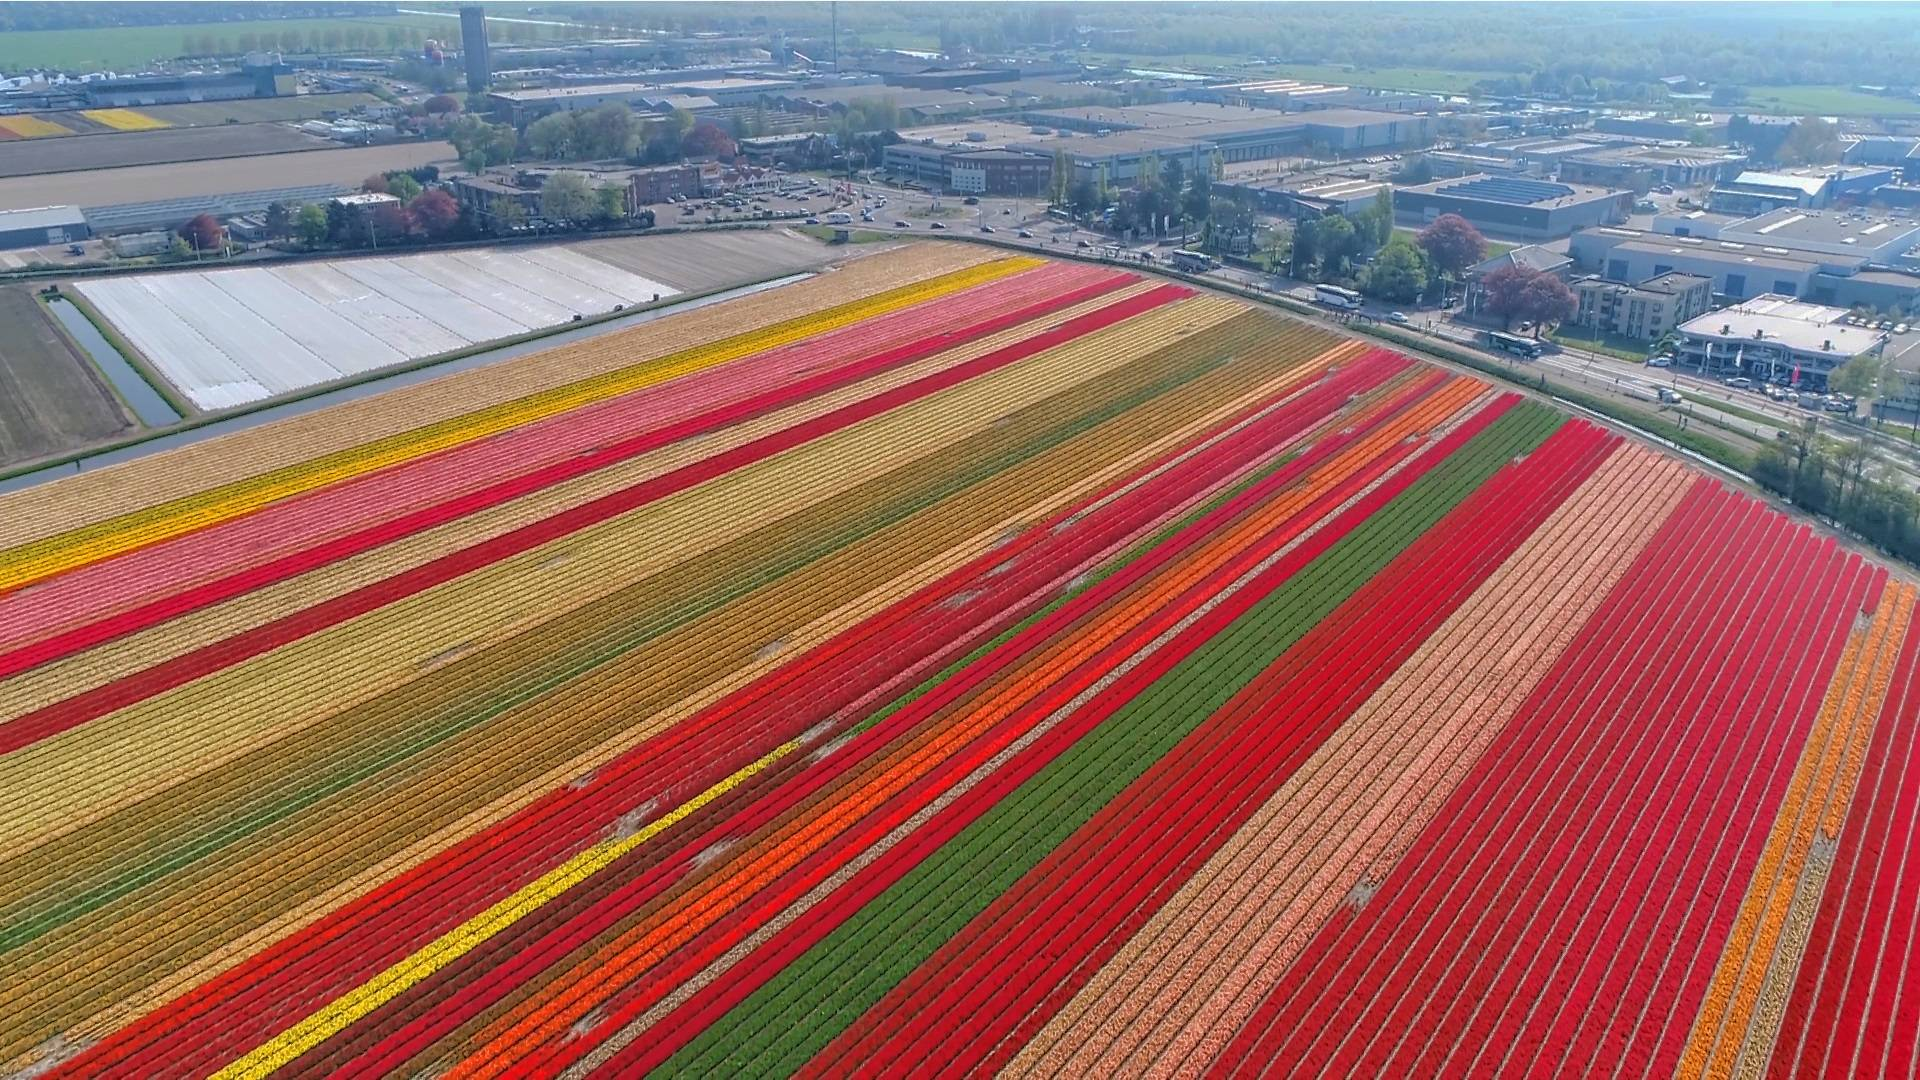 Cycling The Tulip Fields Holland Bike Tours